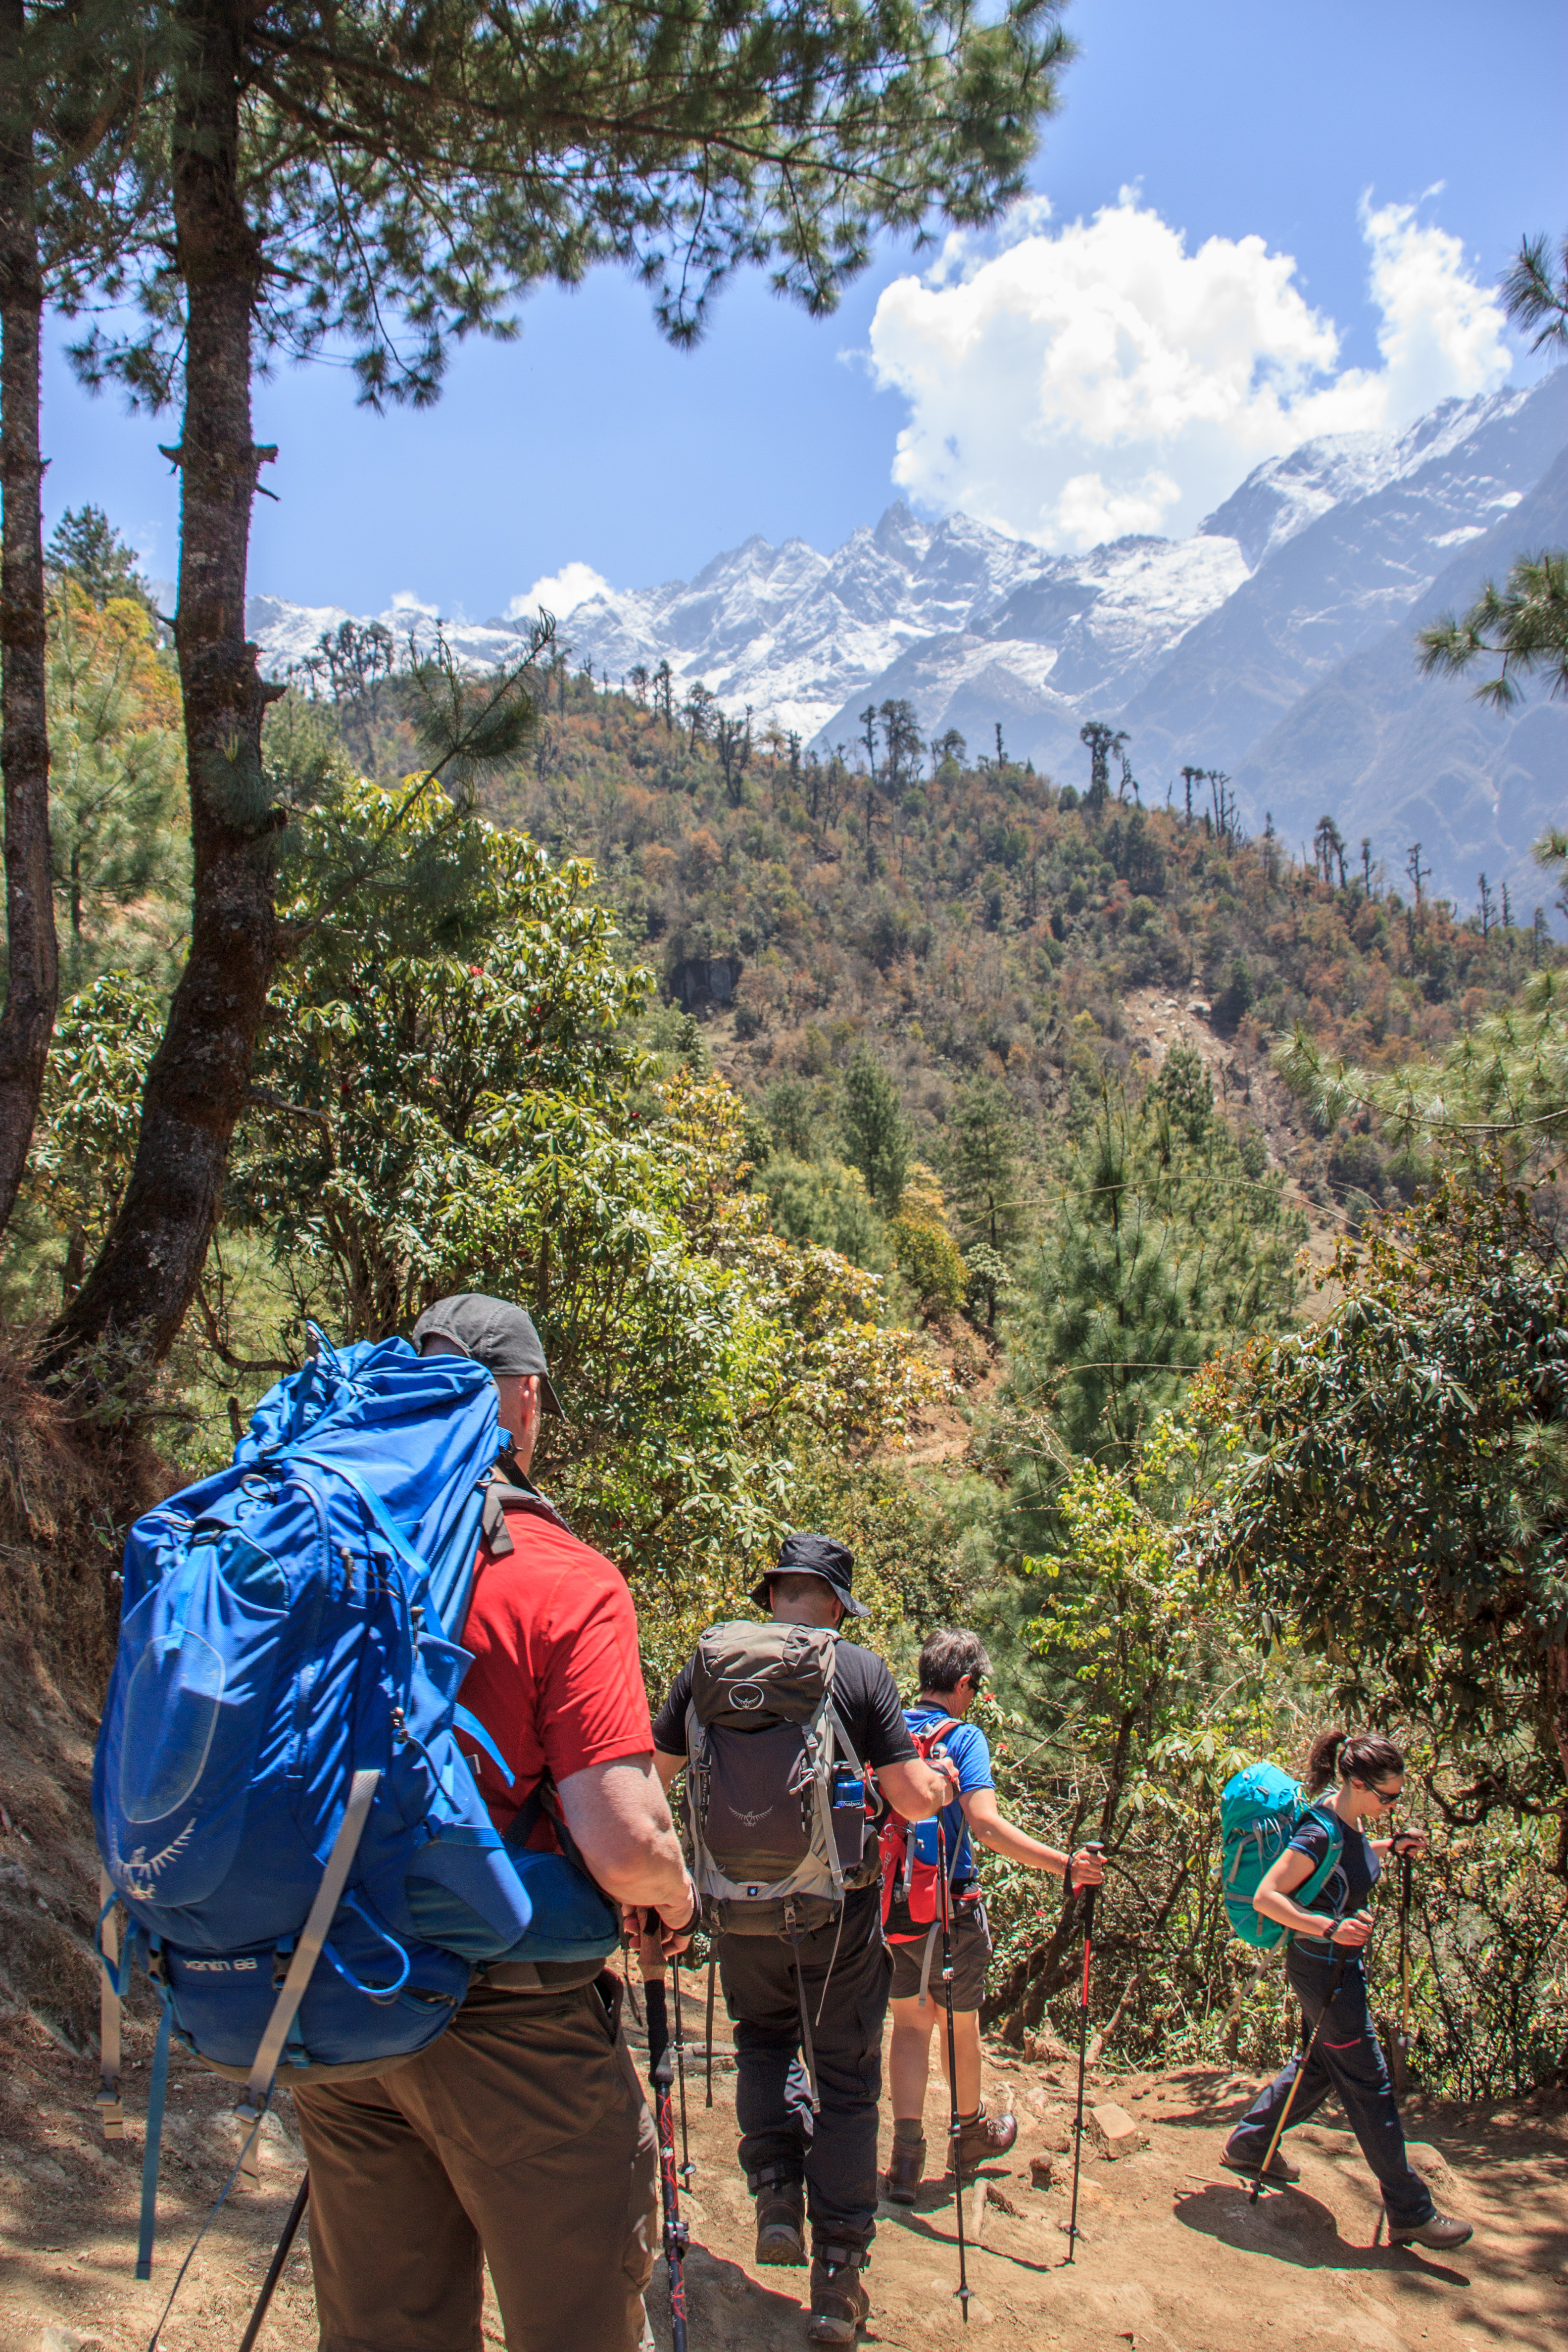 The first day - descending from Lukla to the valley below!